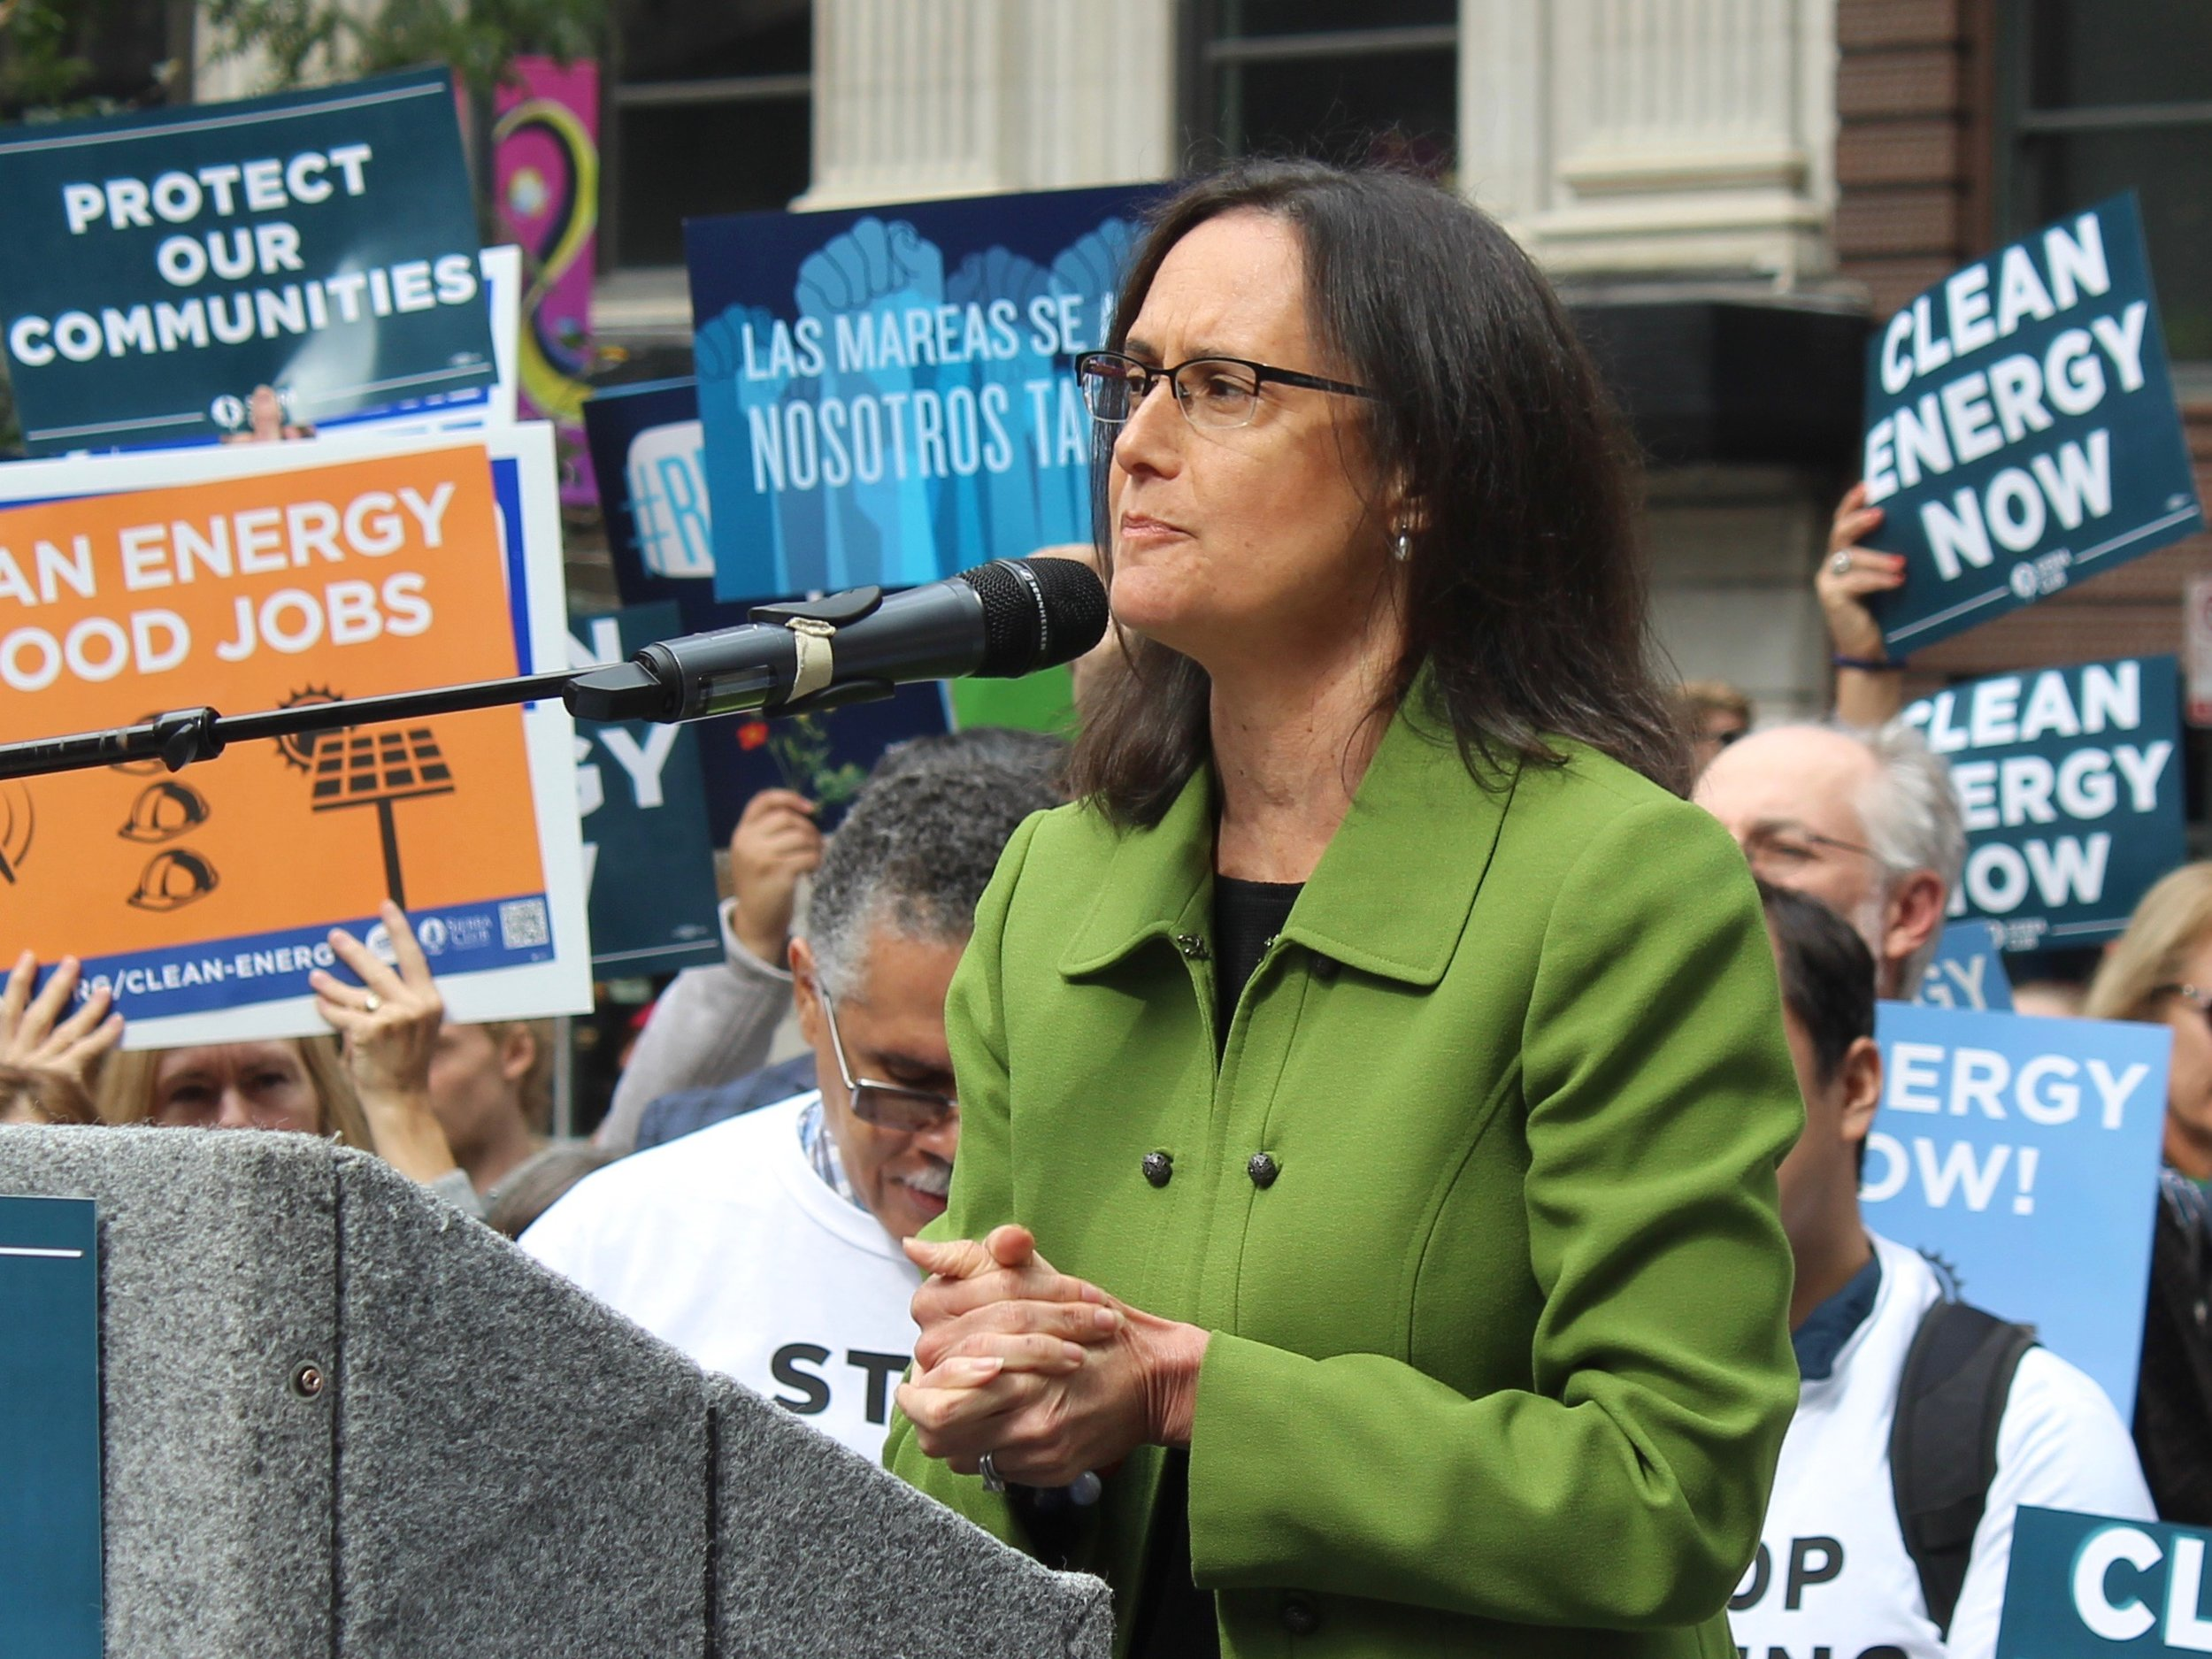 Lisa Madigan is joining 38 other attorneys general in demanding action on robocalls from telecommunication companies. (One Illinois/Ted Cox)